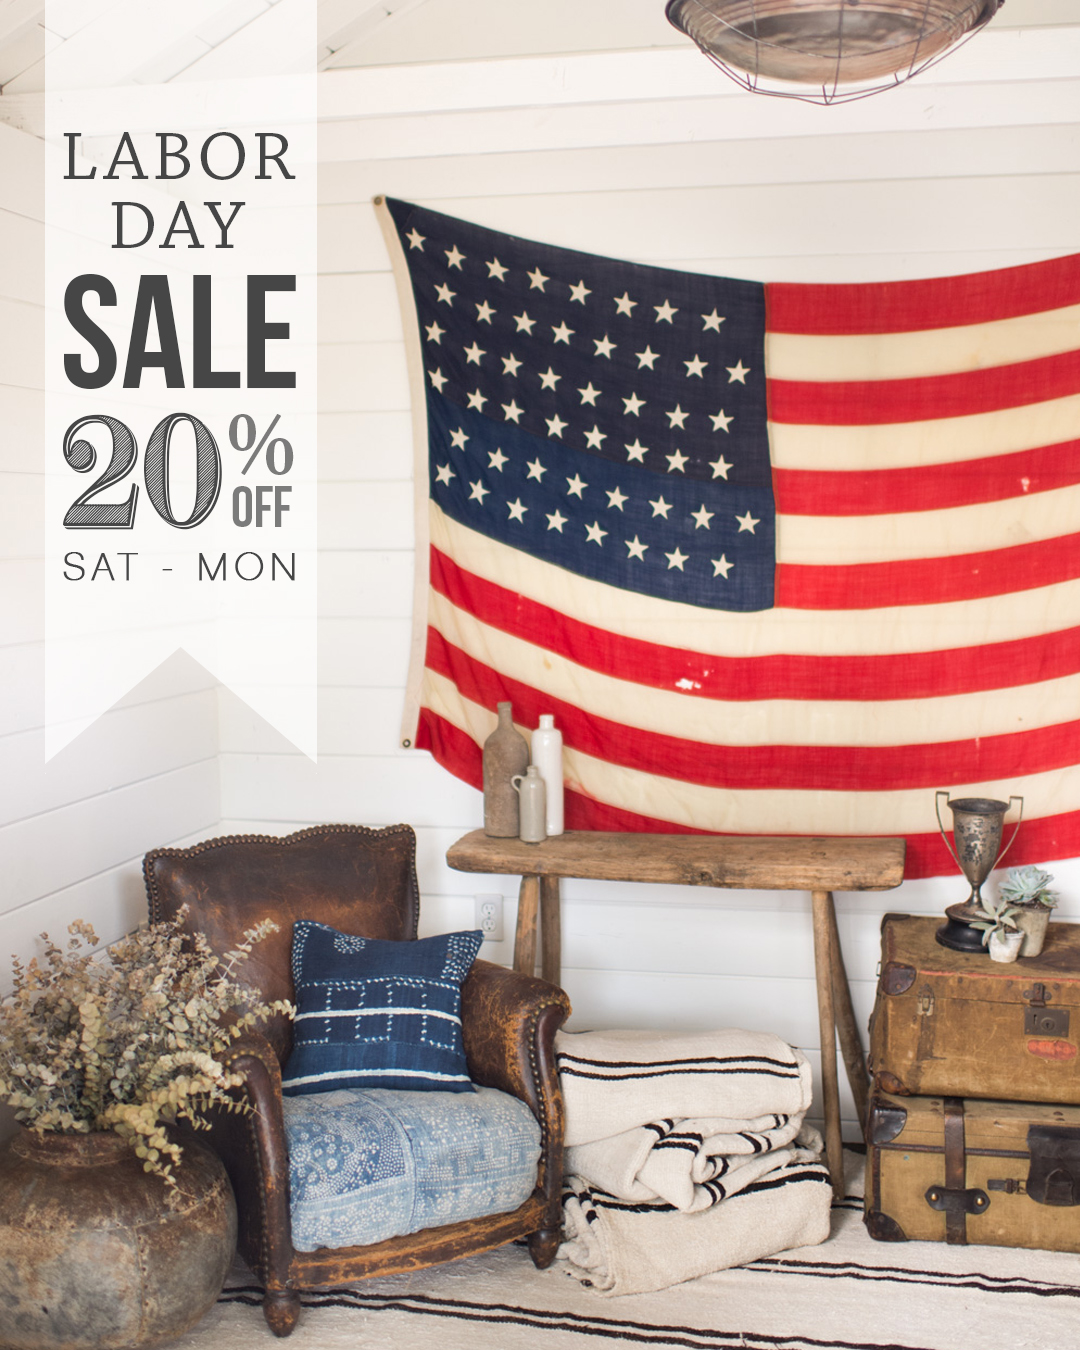 labor-day-sale-20off